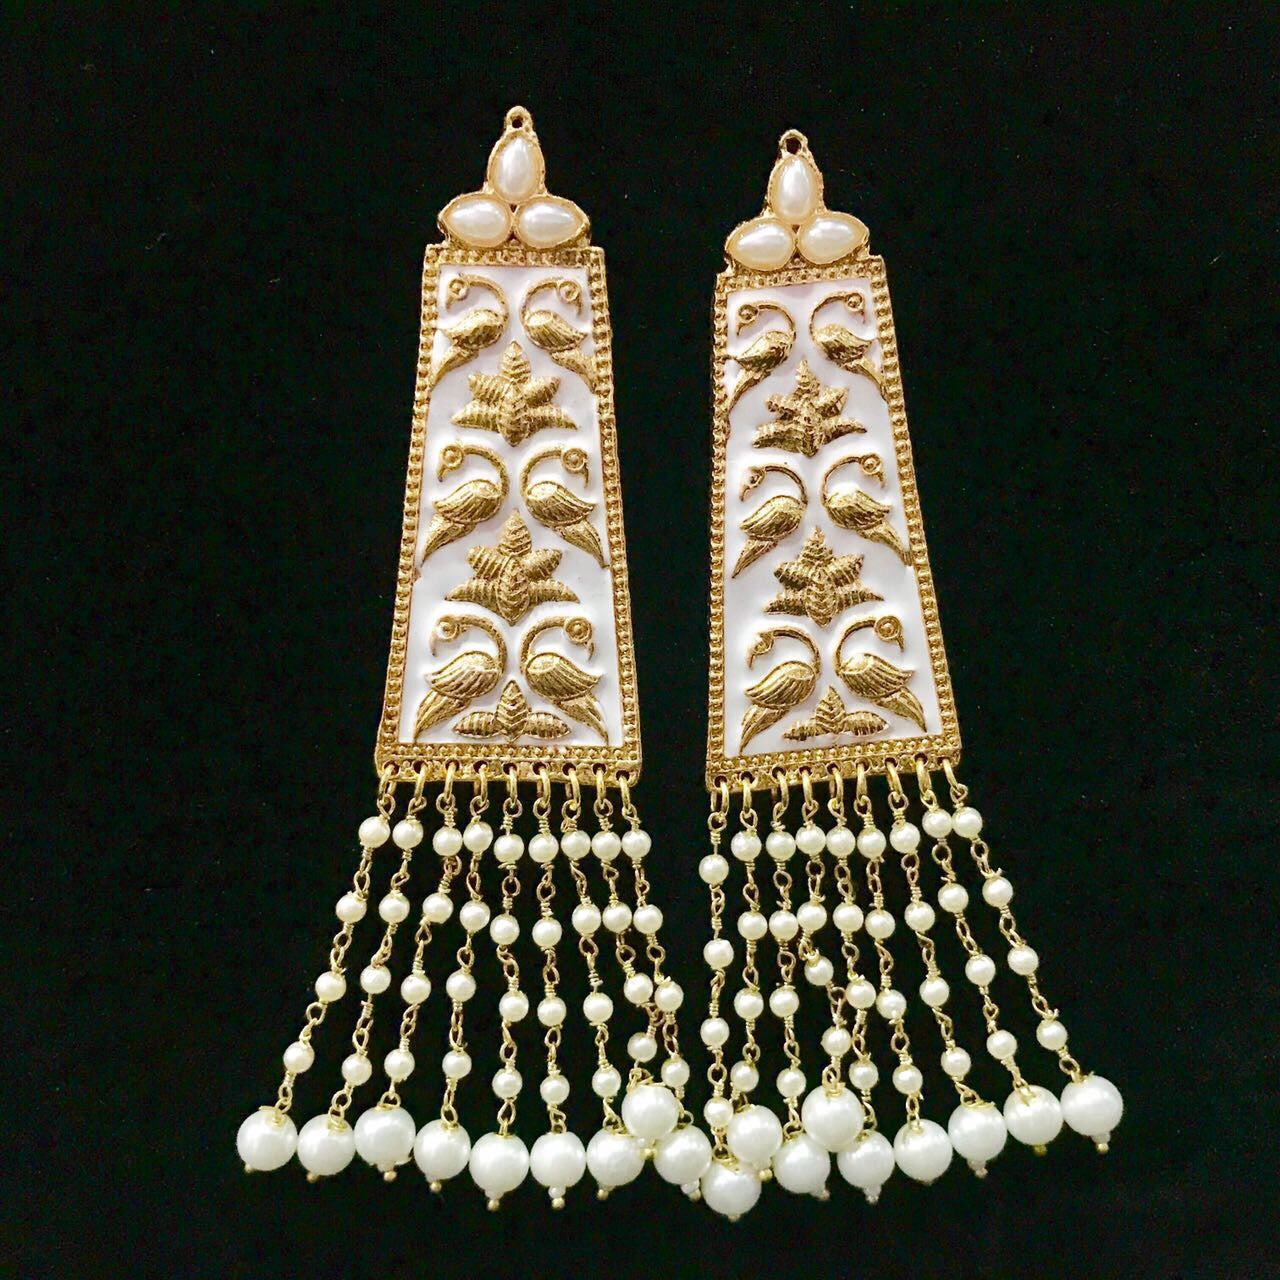 White Hand Painted Enameled Earrings with White & White Colored Pearls